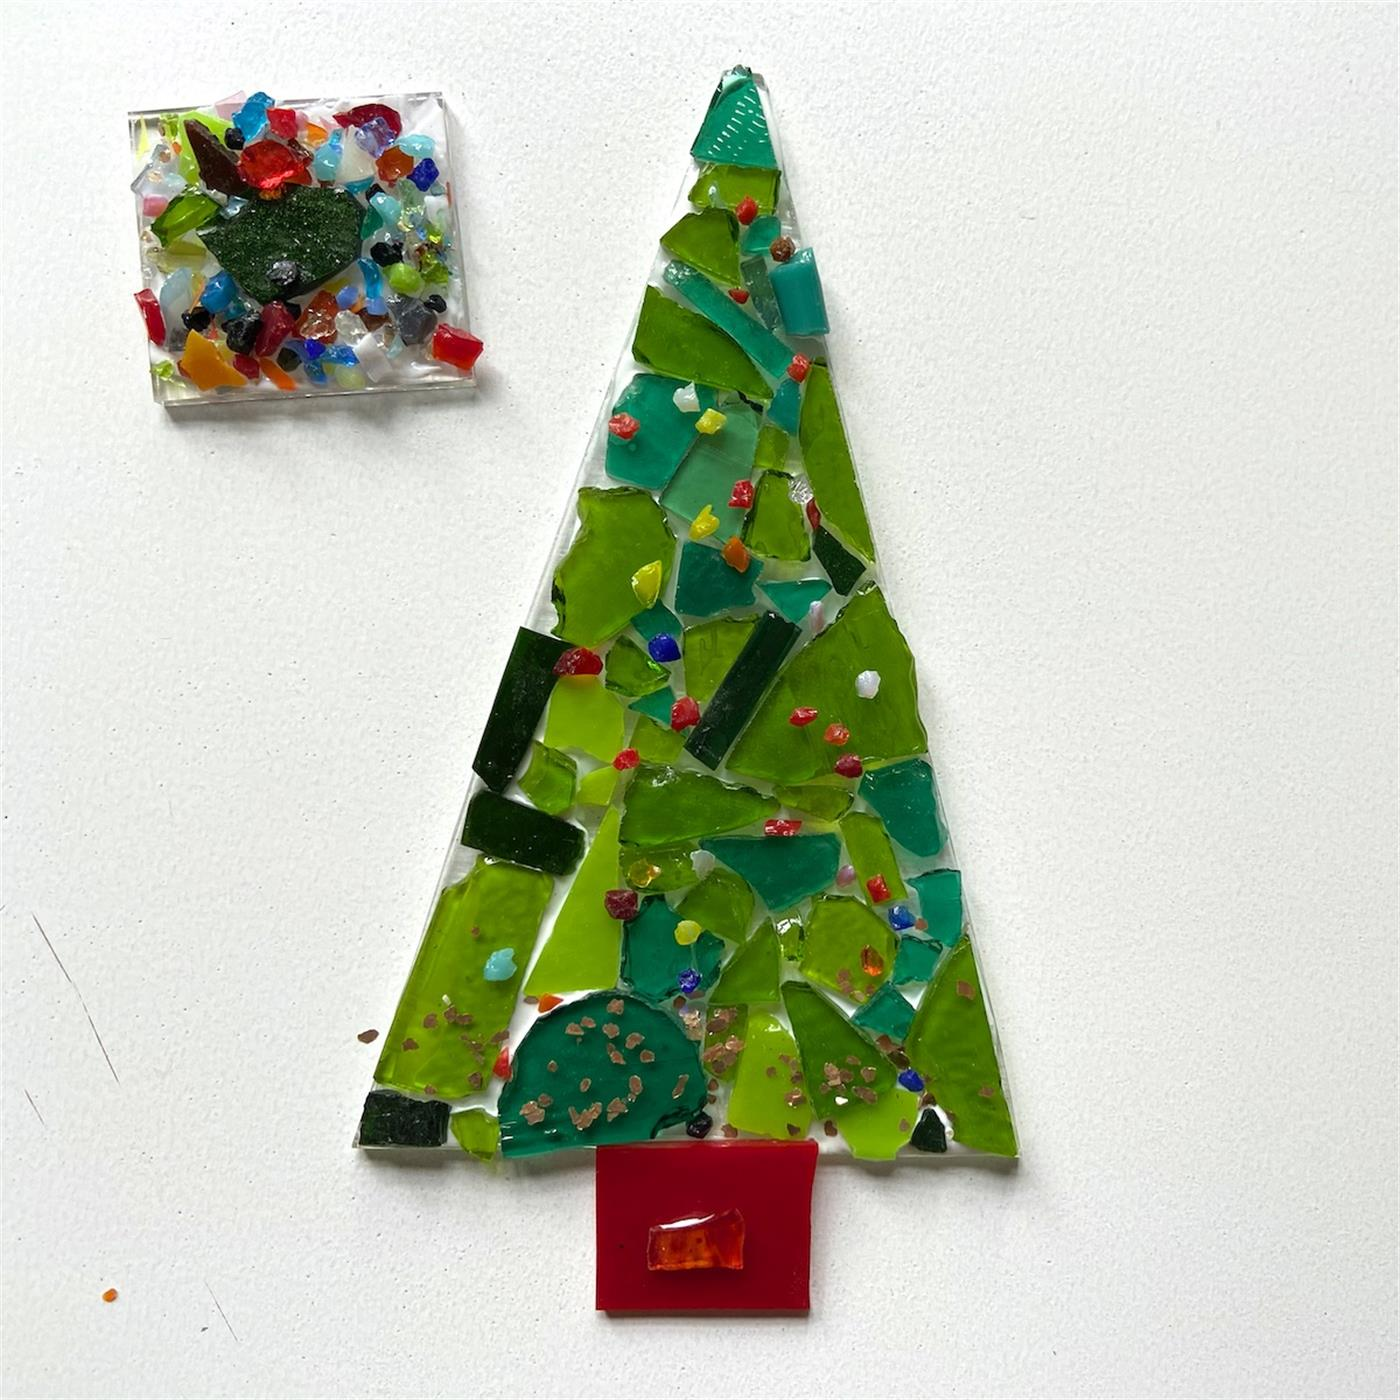 Create Your Very Own Fused Glass Decorations At Home With Our Fun And